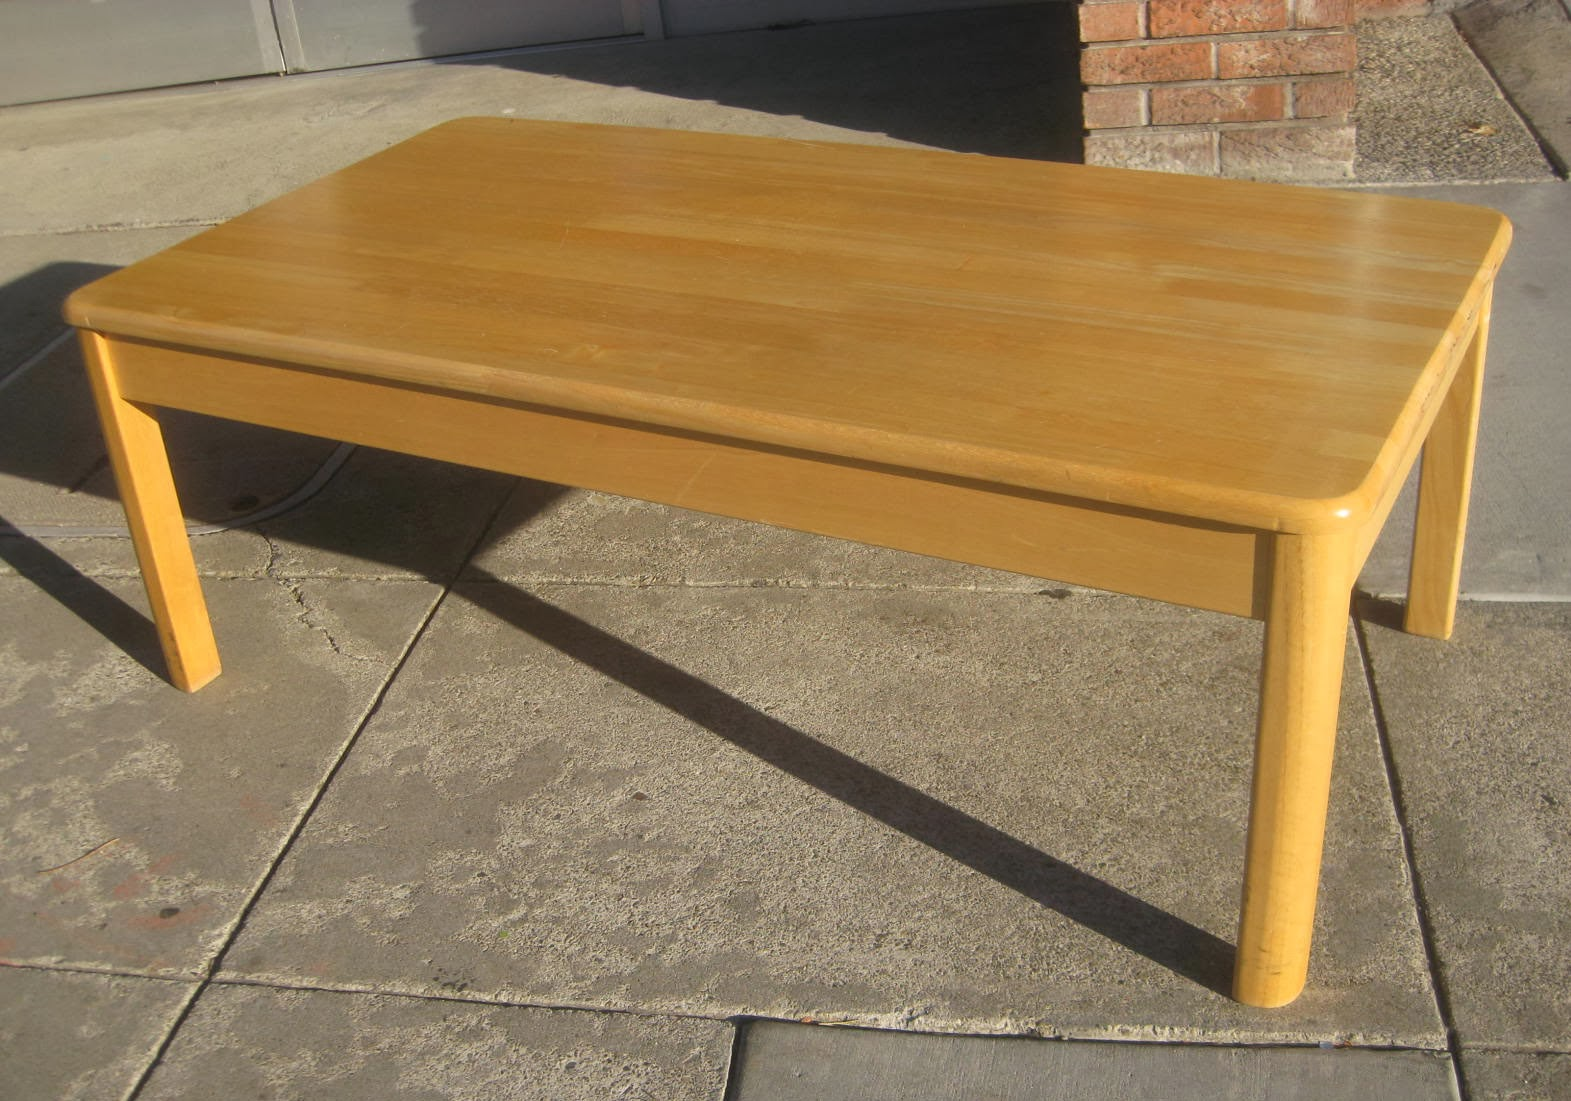 Uhuru Furniture Collectibles Sold Ash Coffee Table 20